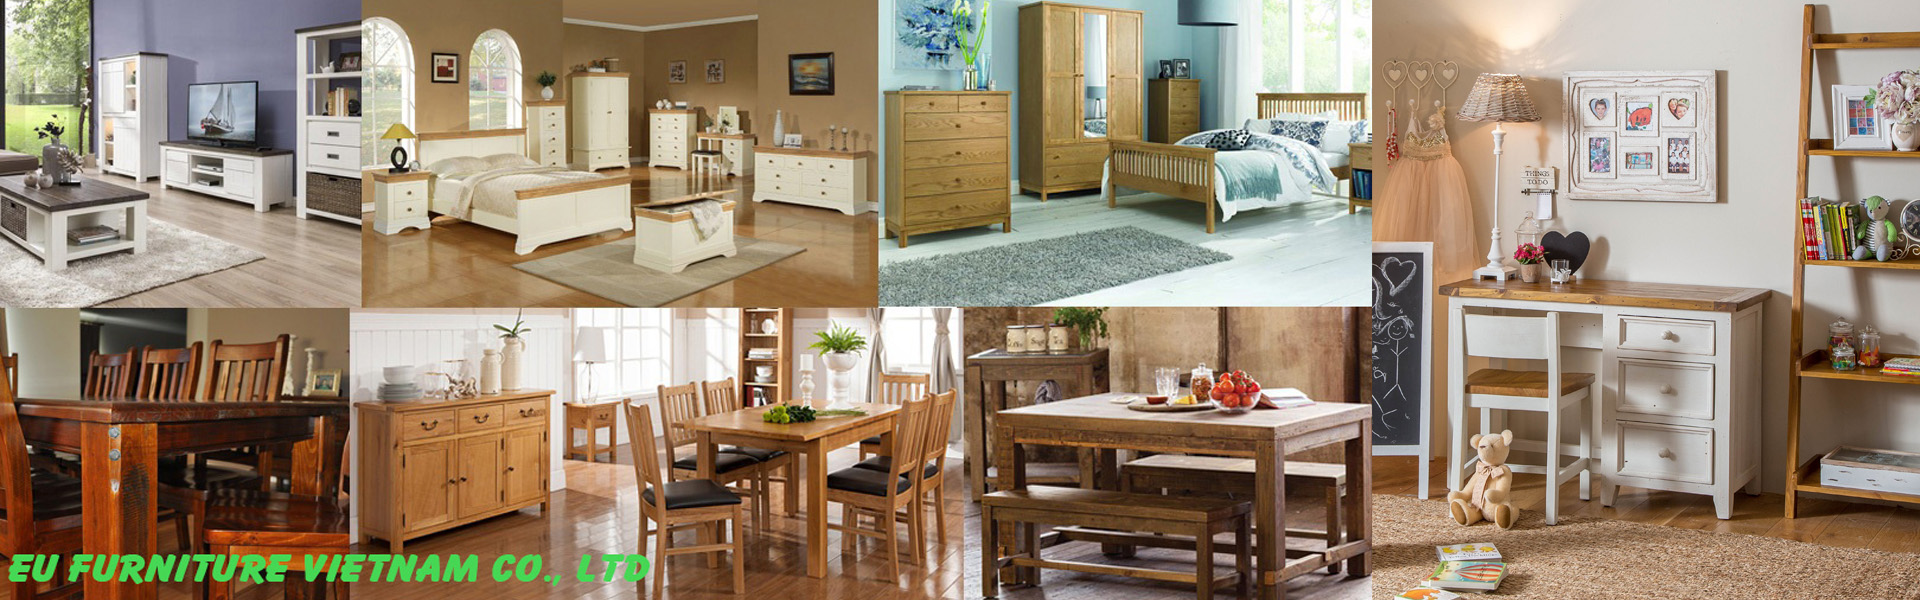 eu-furniture viet nam co.,ltd